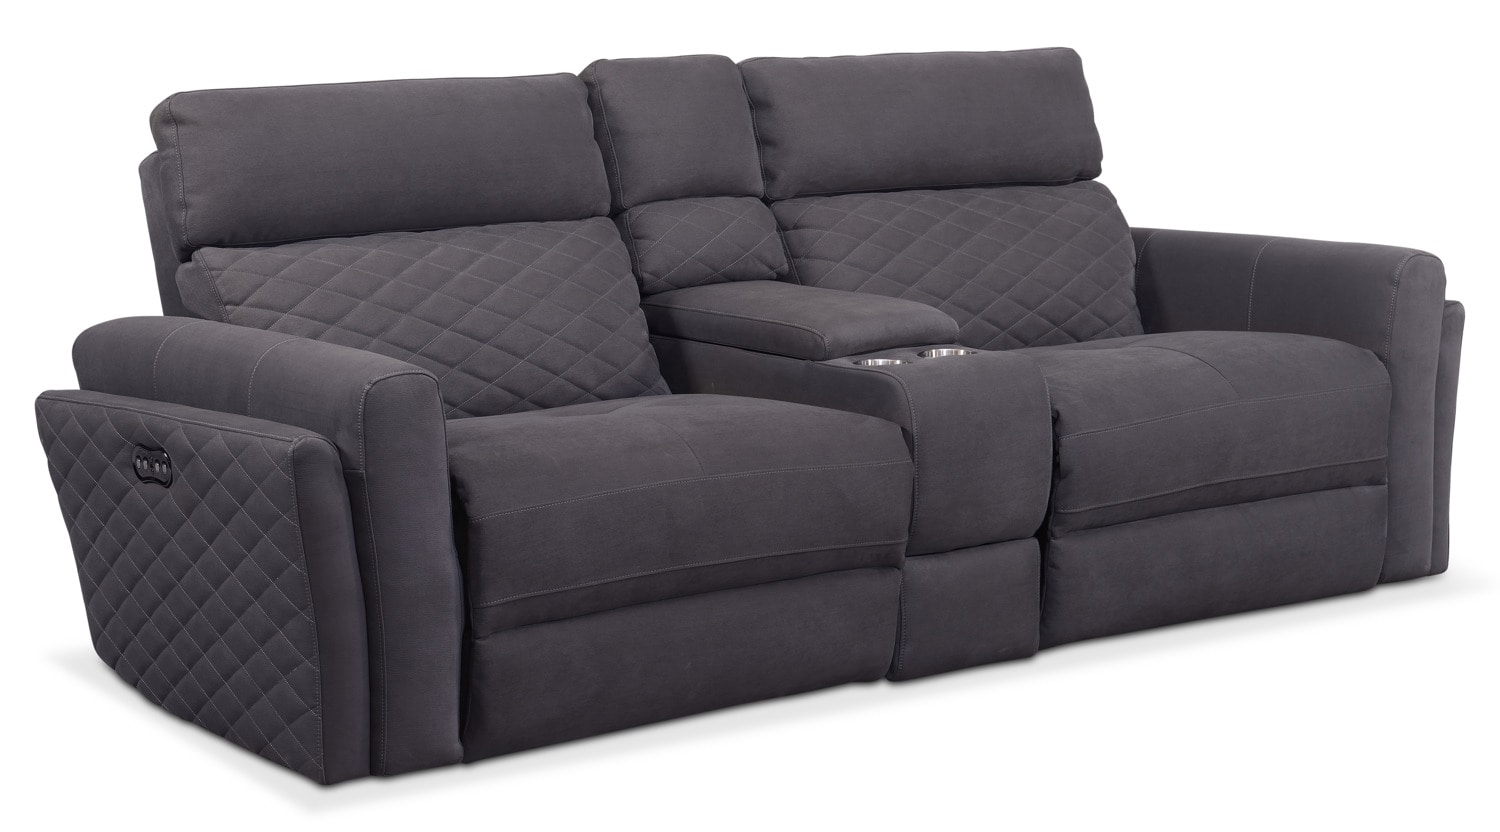 Living Room Furniture - Catalina 2-Piece Dual-Power Reclining Sofa with Console